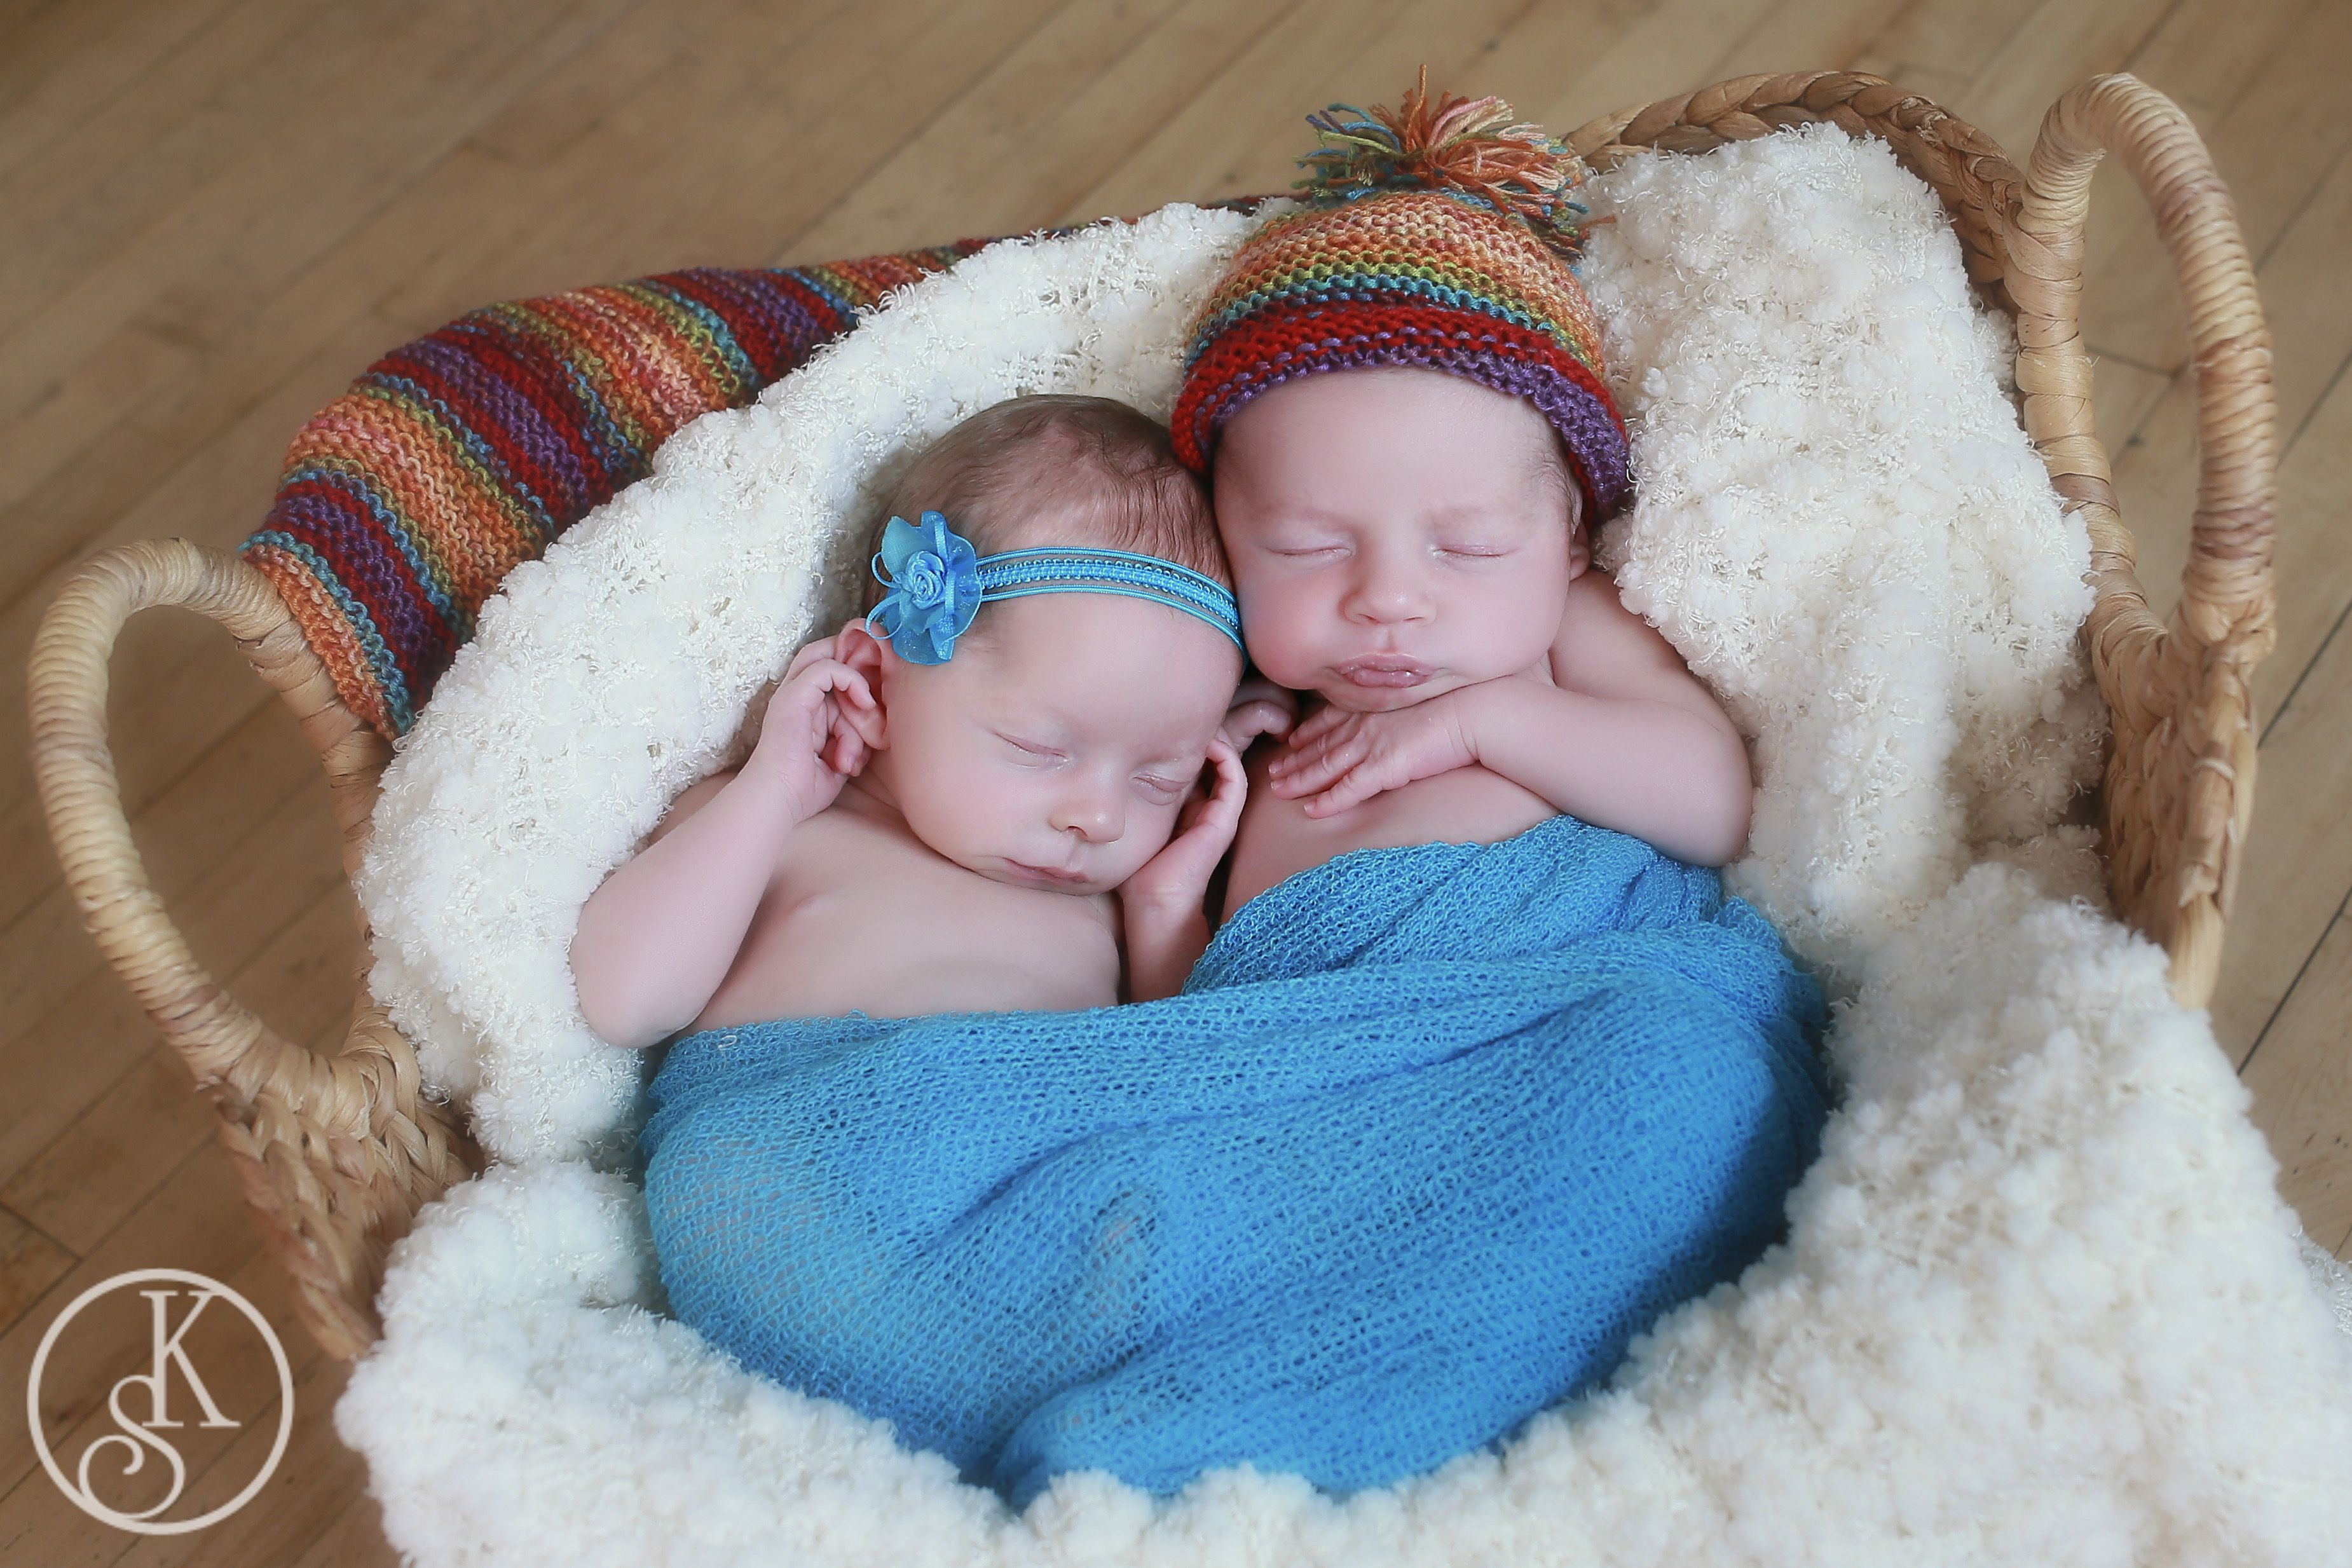 newborn twins on location in basket with hat